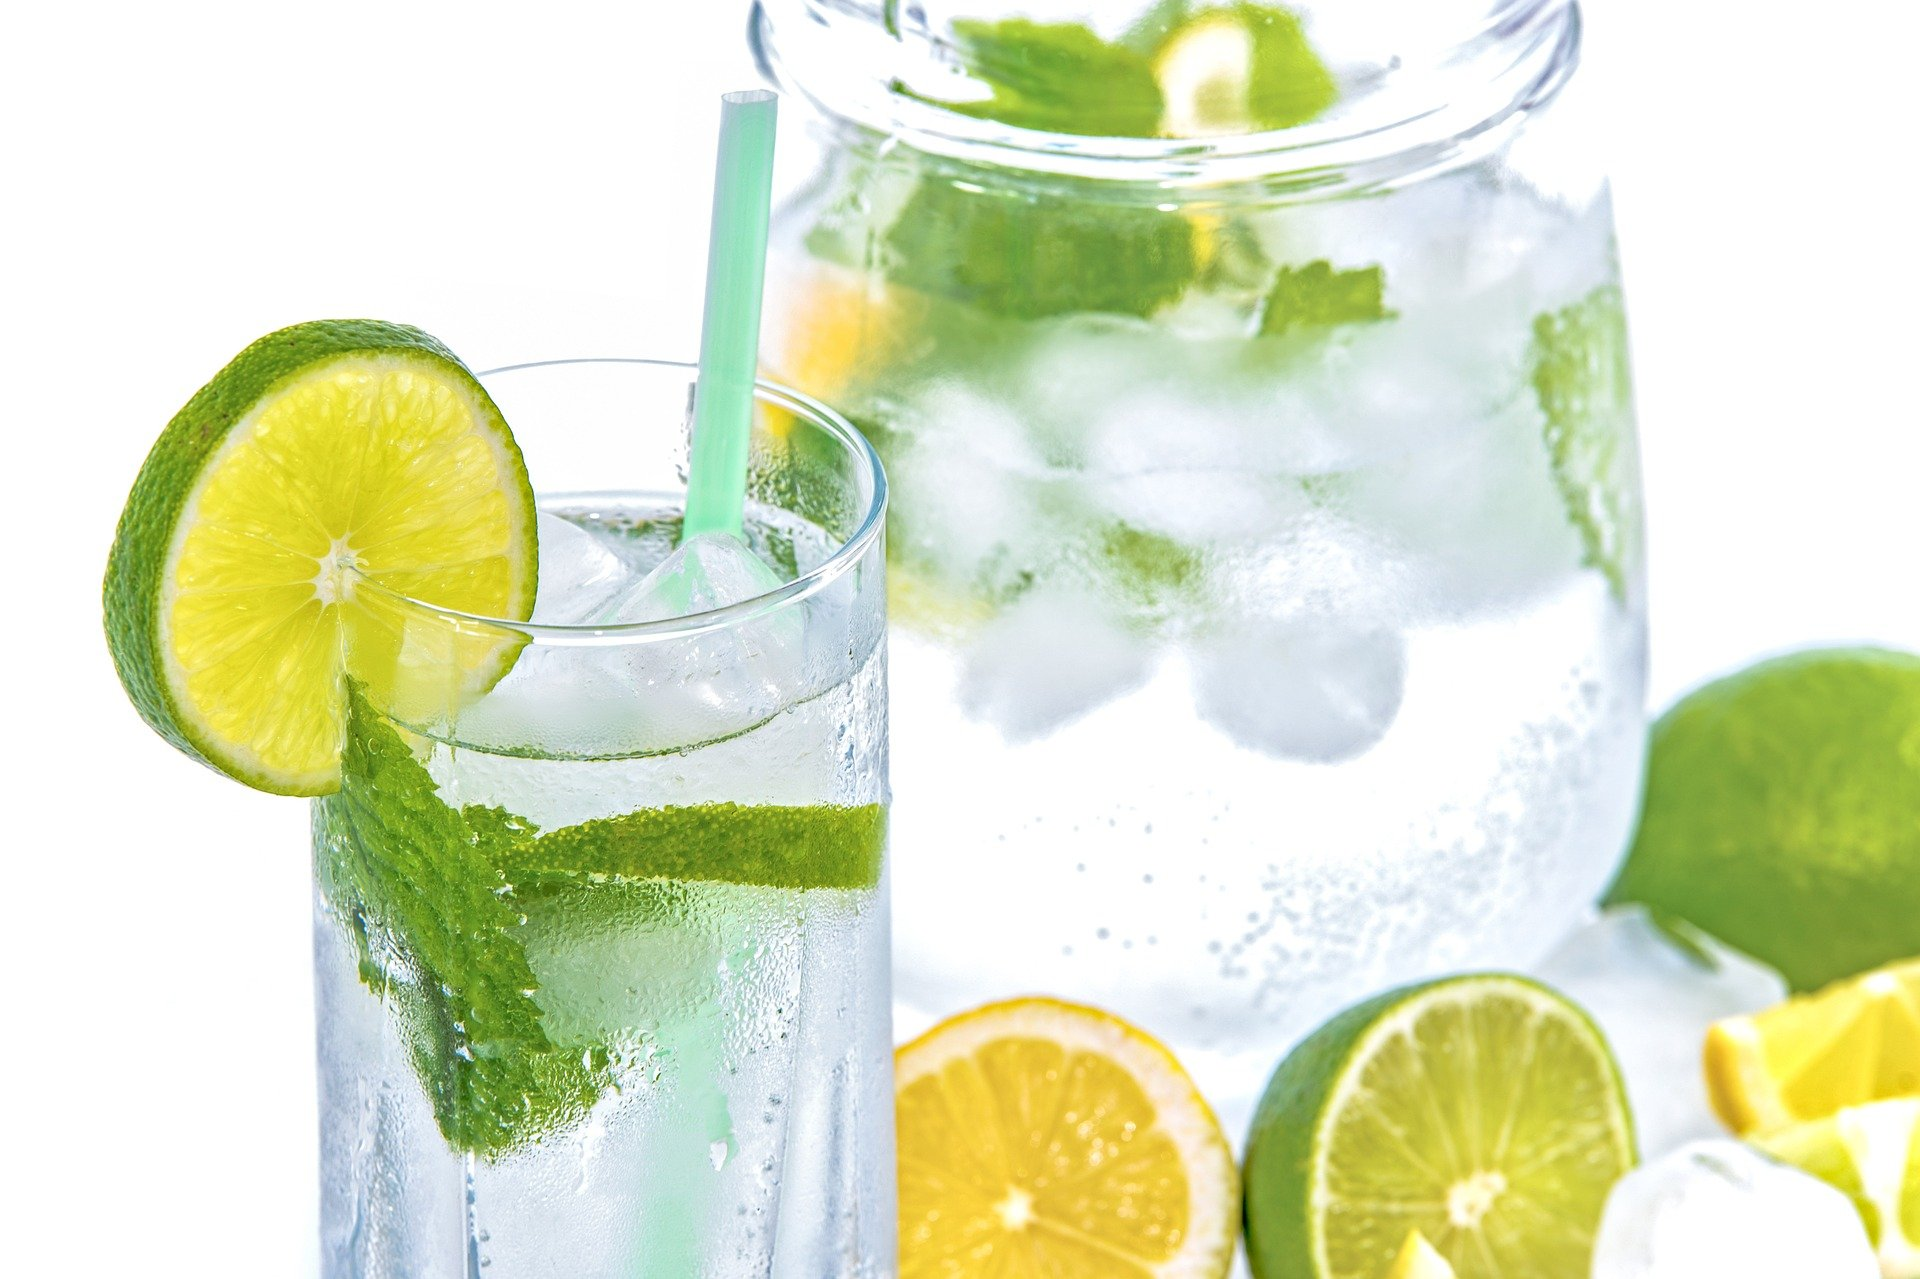 healthy ageing - water with lemon and lime